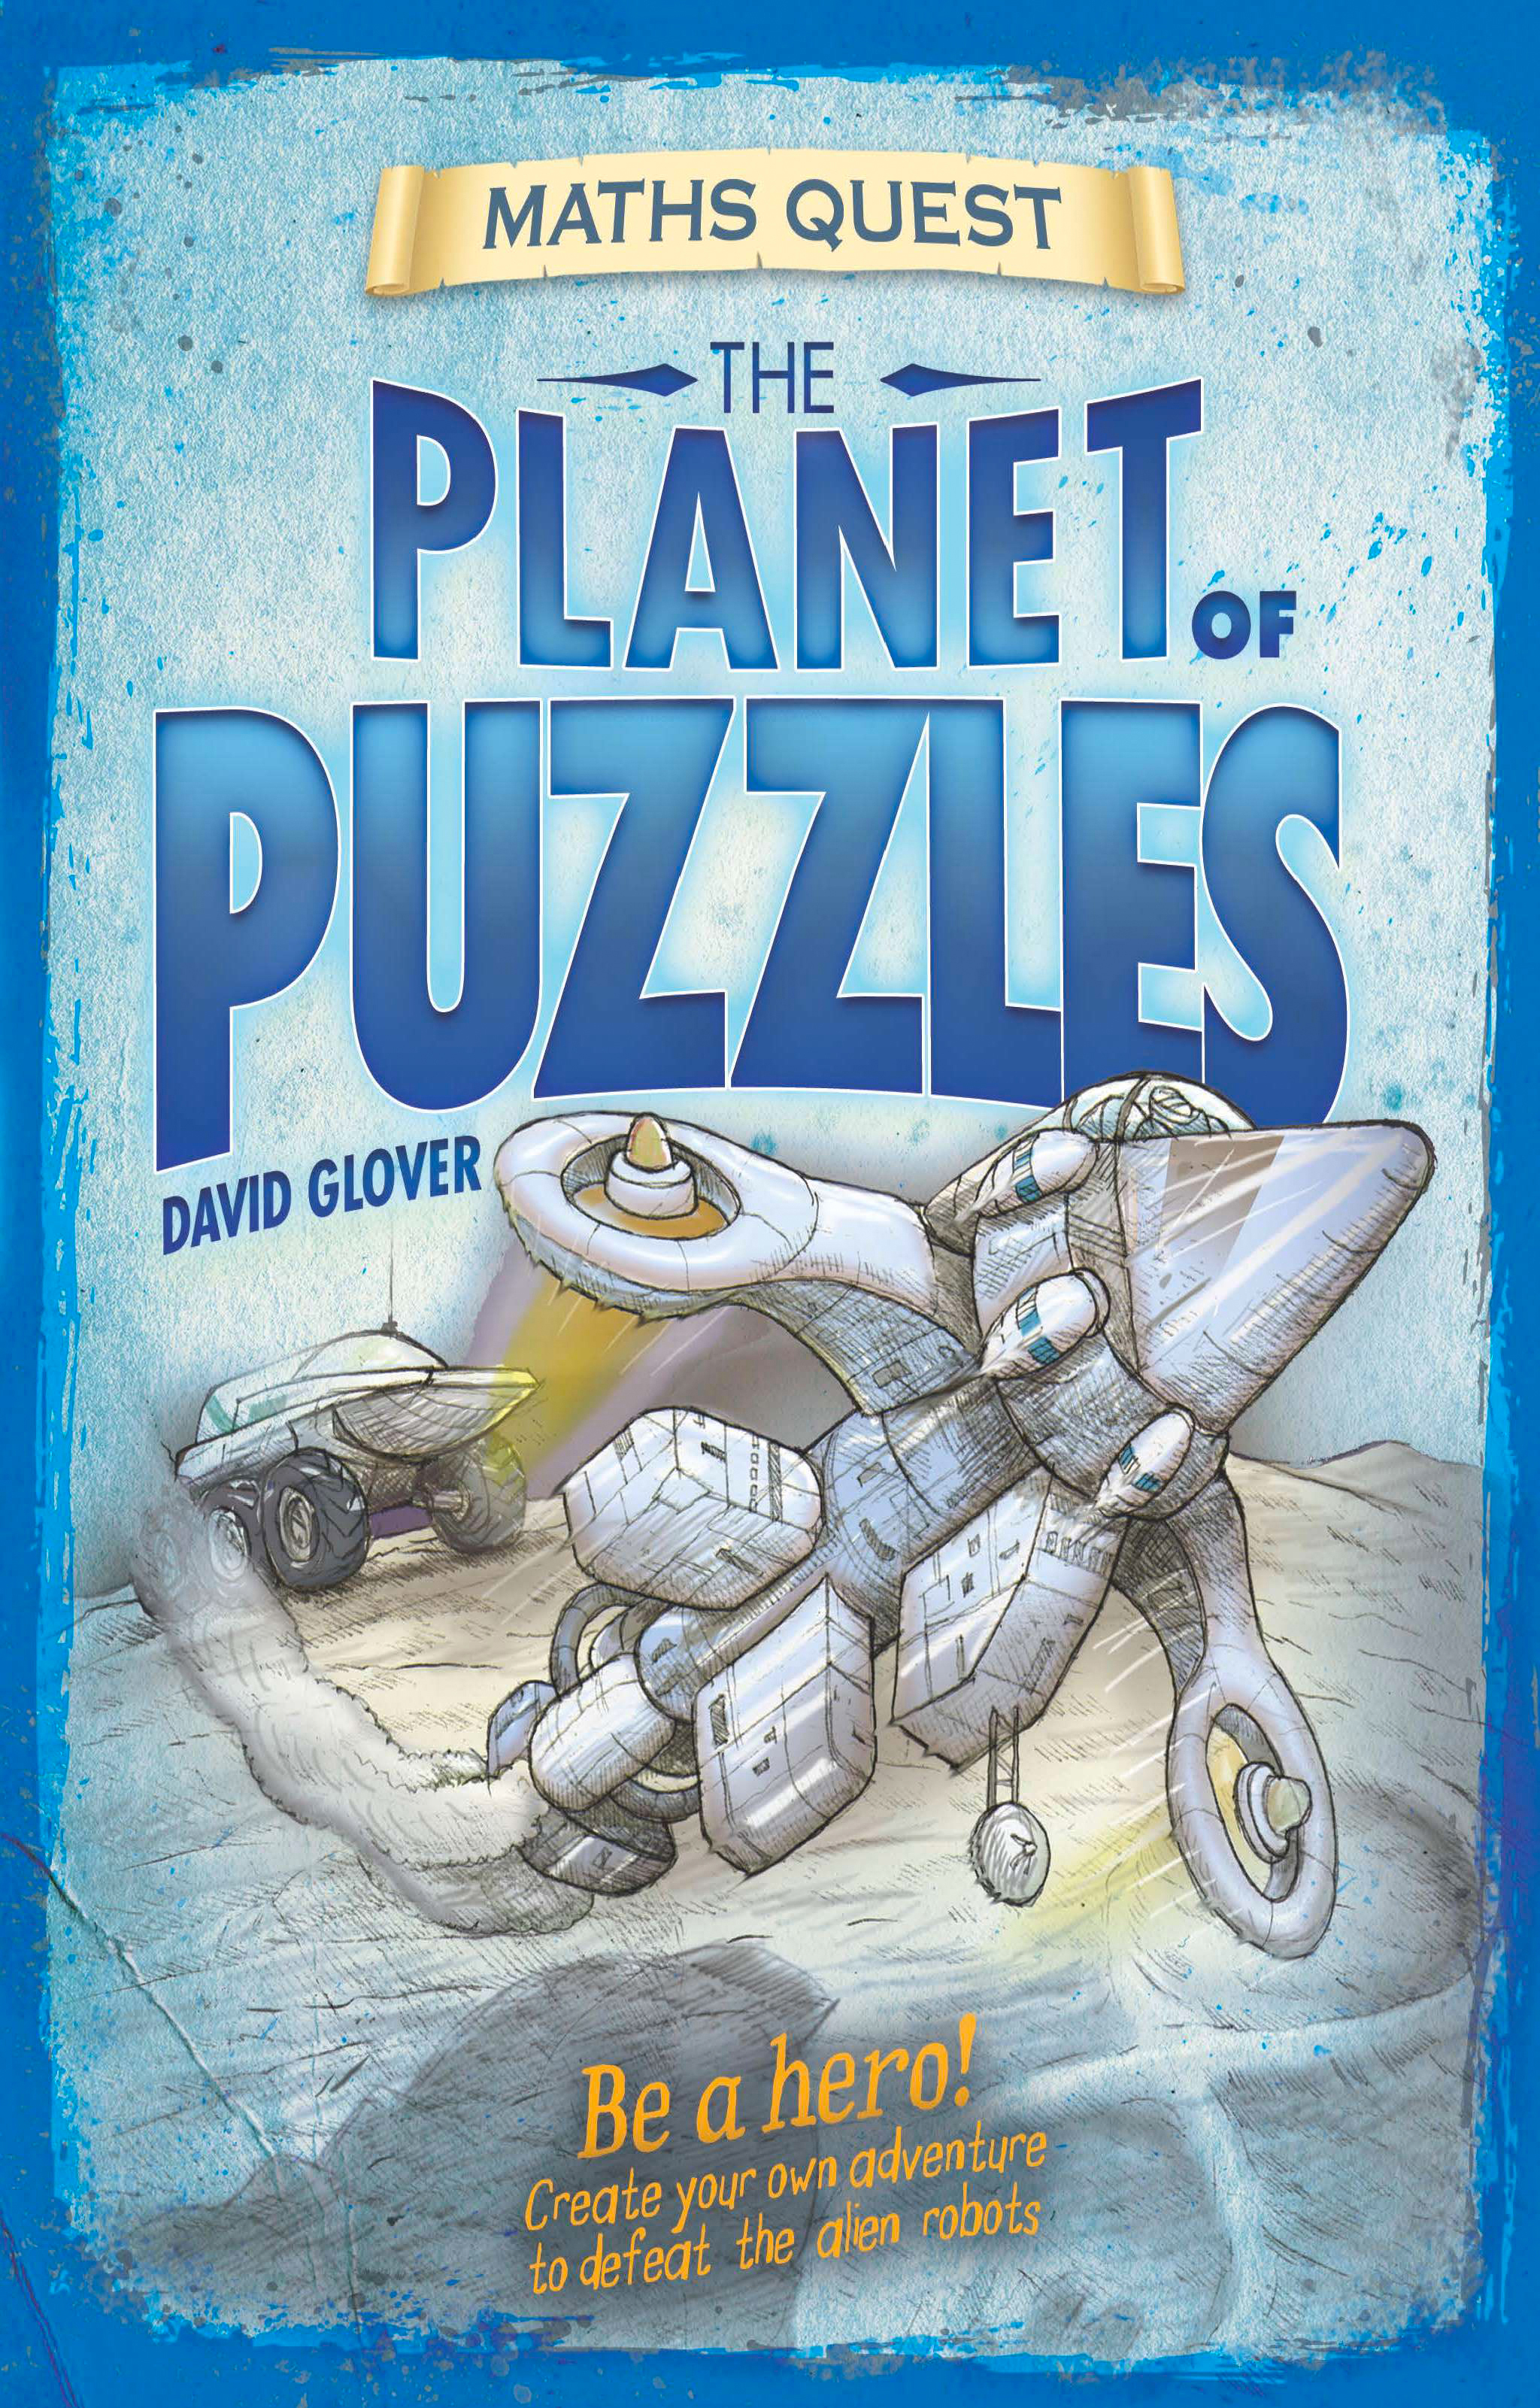 The Planet of Puzzles (Maths Quest) - David Glover - 9781848356368 ...